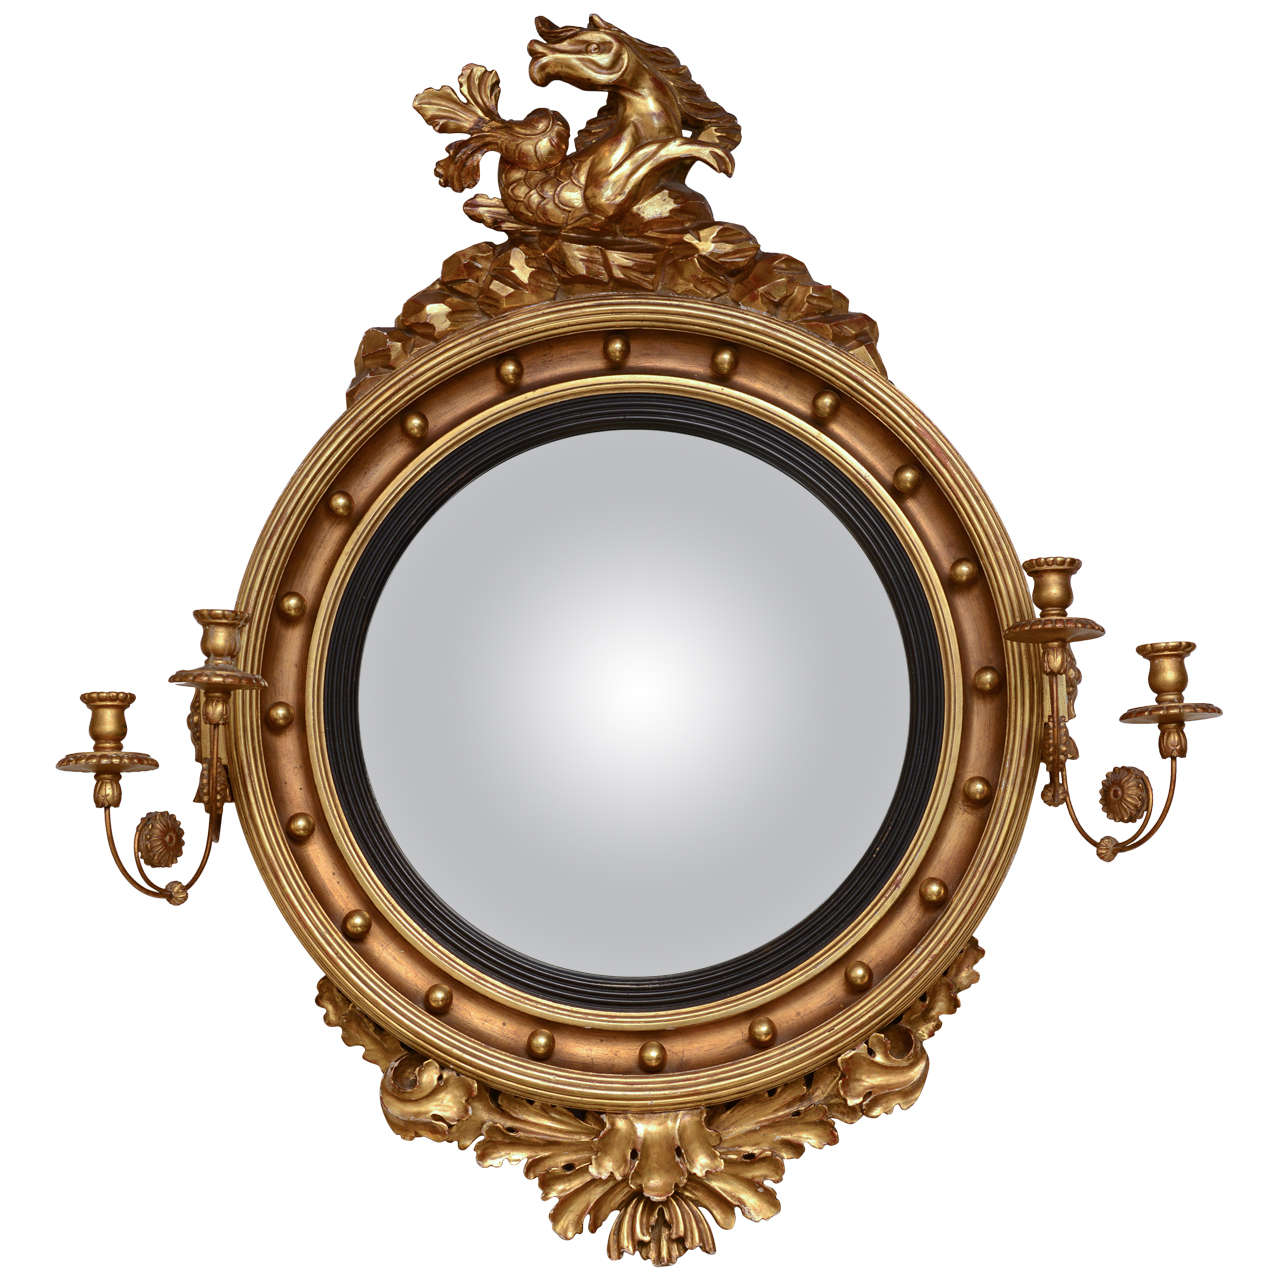 Giltwood girandole mirror for sale at 1stdibs for Convex mirror for home